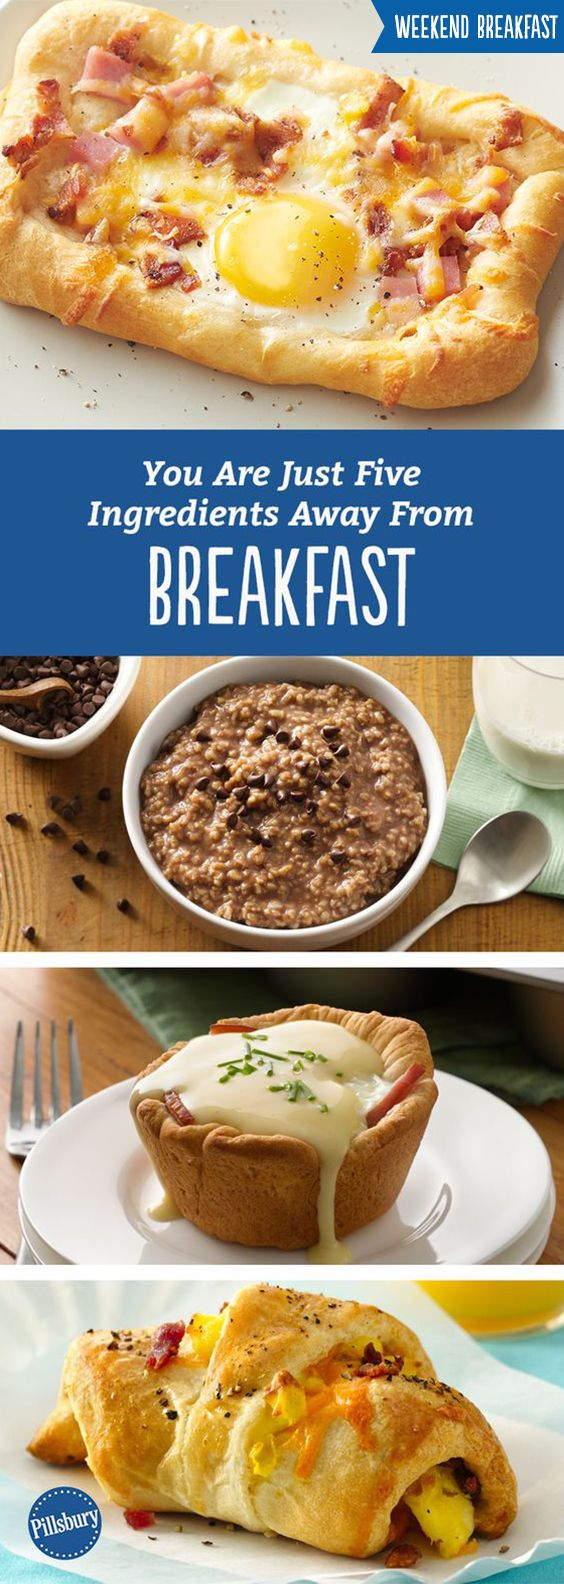 5-ingredient breakfasts almost sound too good to be true! Everyone wants an easy and relaxing morning so this collection of super simple recipes will be your new go-to morning solve. From eggs benedict to breakfast sandwiches to danishes you're sure to find something your whole family will love!